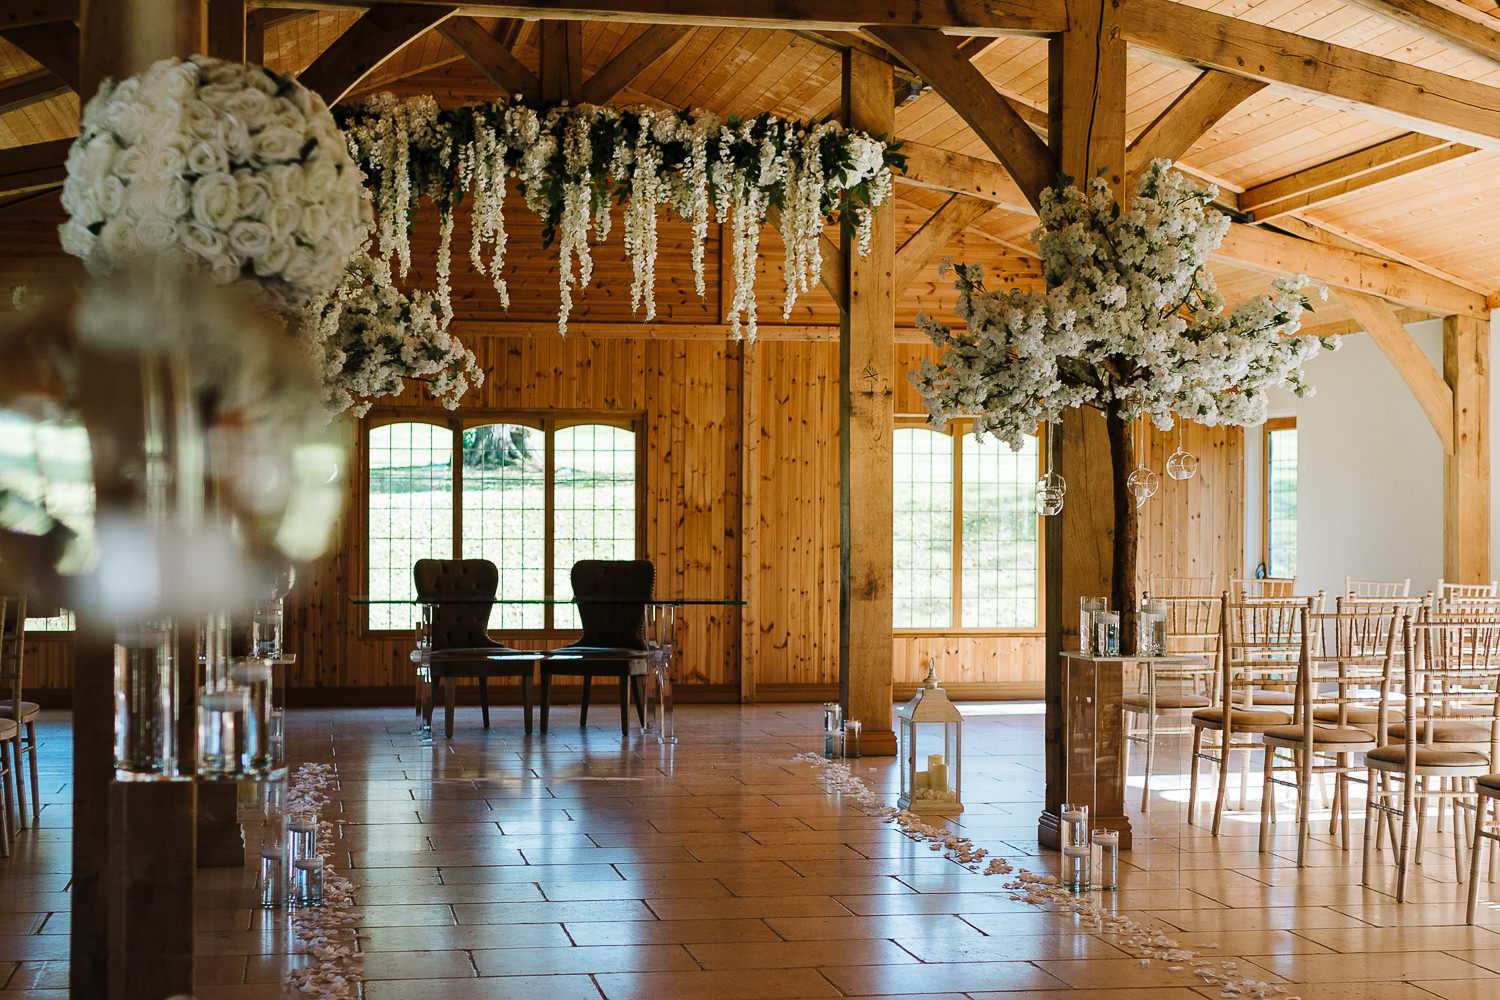 A photo of inside the ceremony room at Colshaw hall